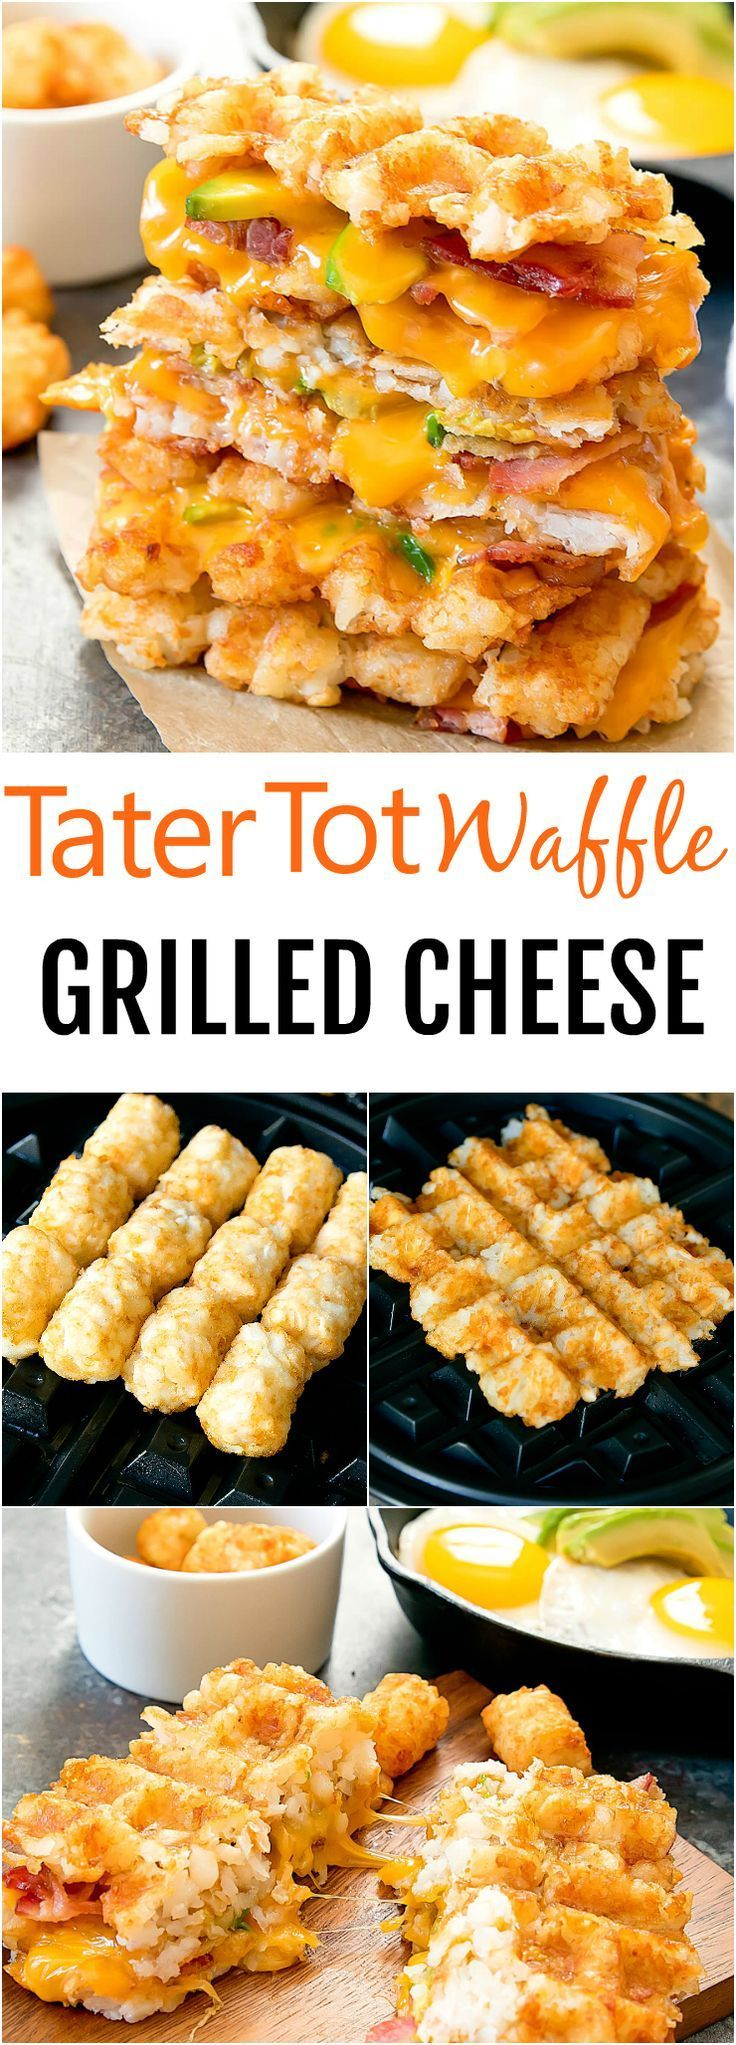 Crispy tater tot waffles are used as the �bread� for this breakfast grilled cheese sandwich filled with bacon, cheese and avocado slices.